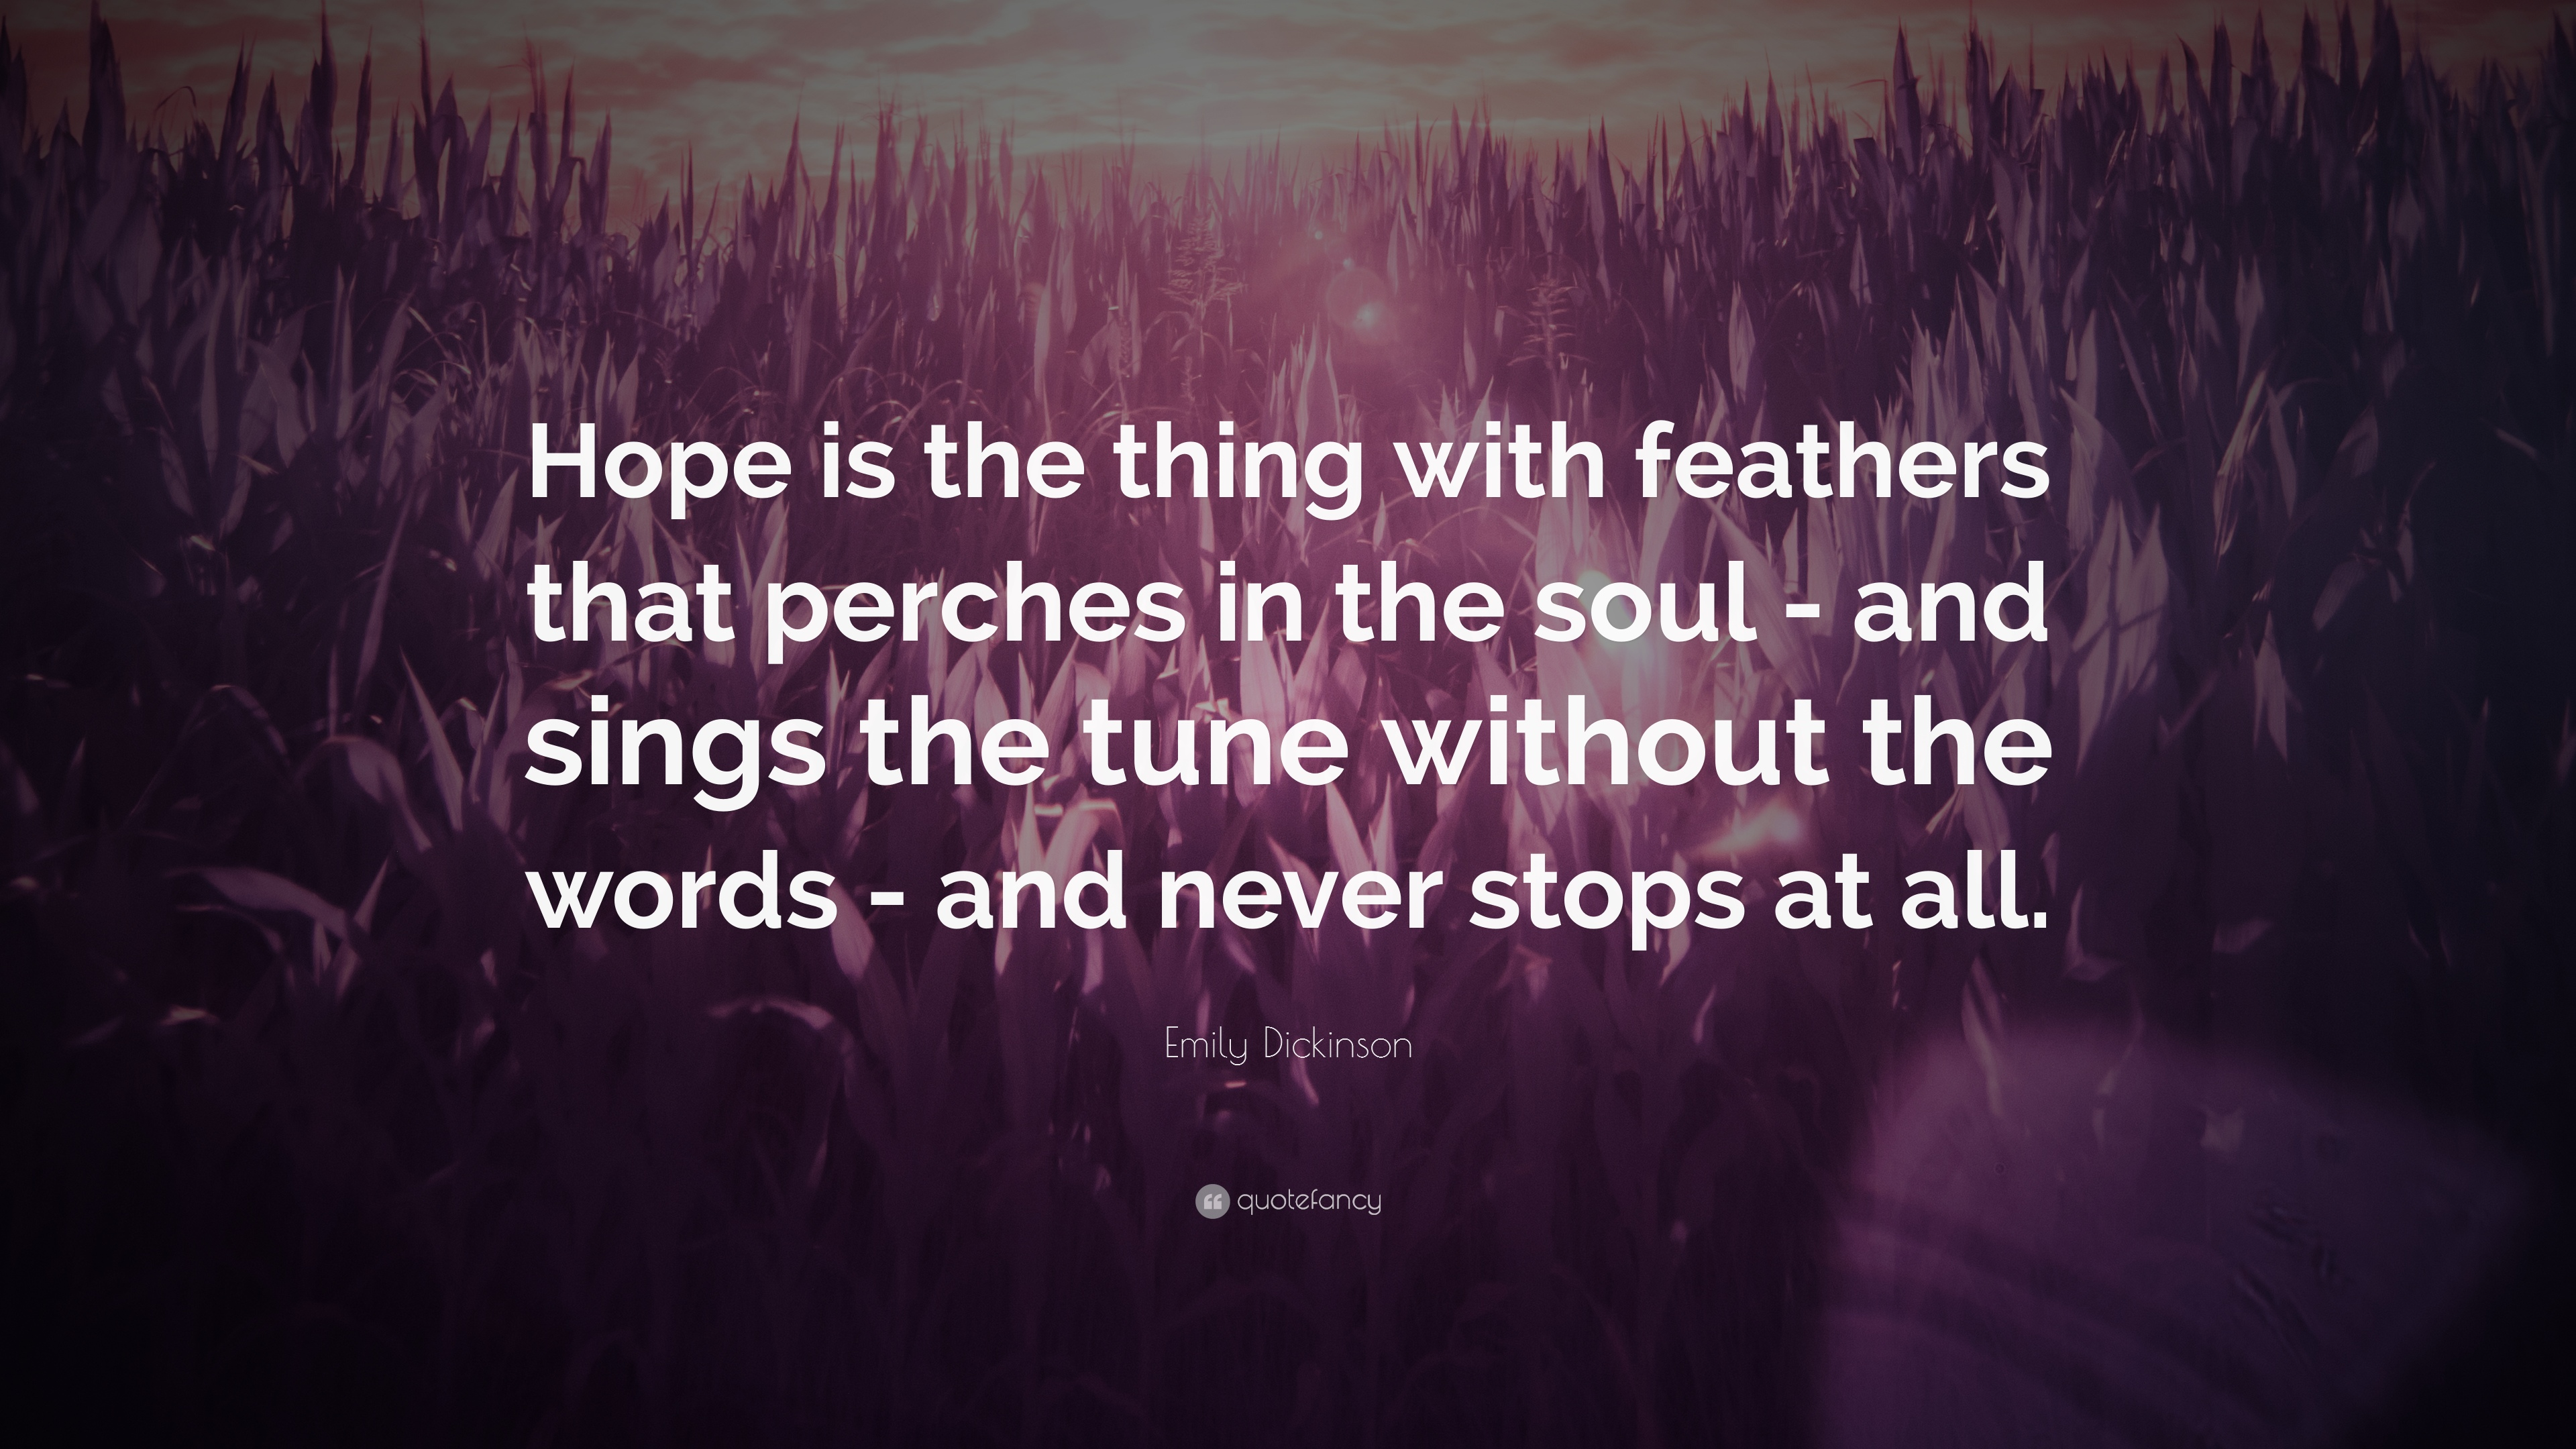 """Hope"" Is the Thing with Feathers: Emily Dickinson"